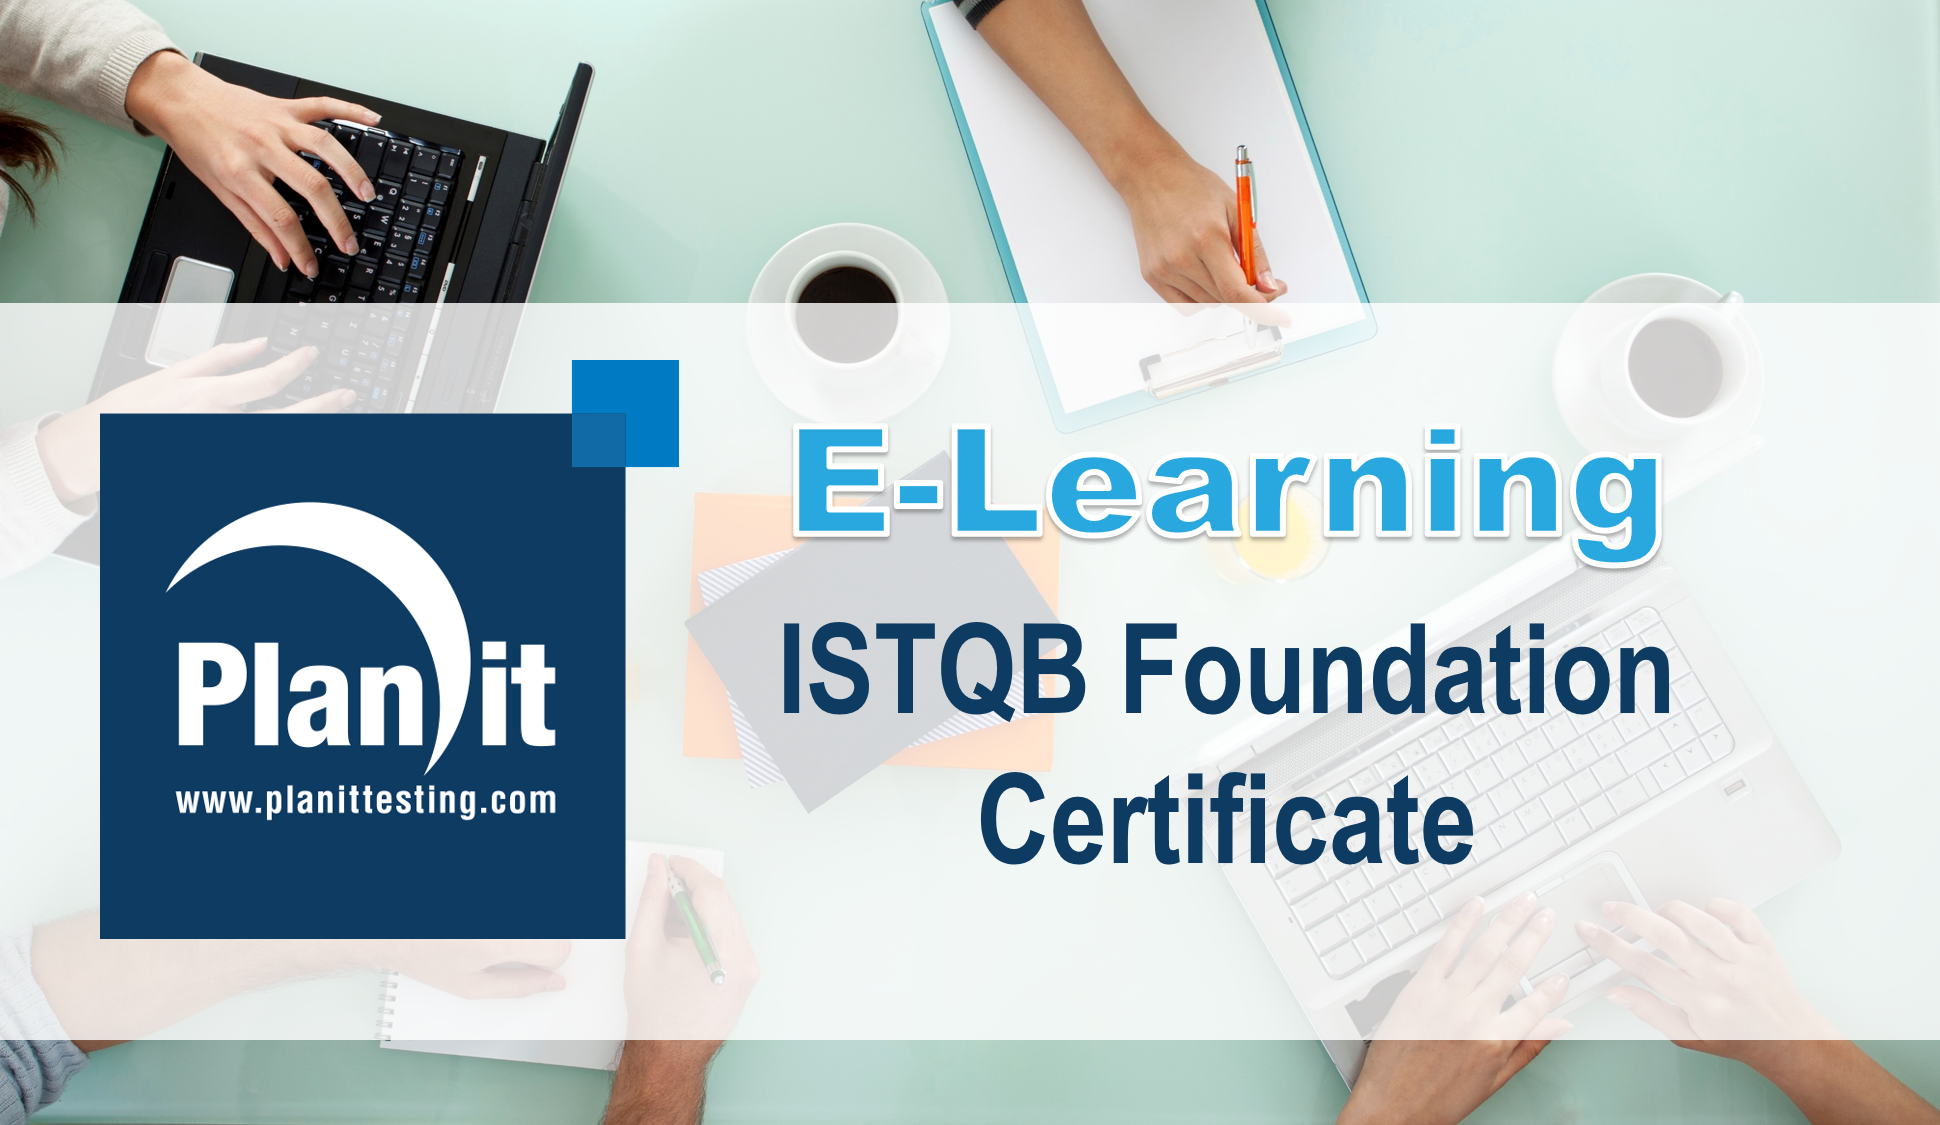 ISTQB Foundation Certificate - Module 2: Testing throughout the Software Development Life Cycle